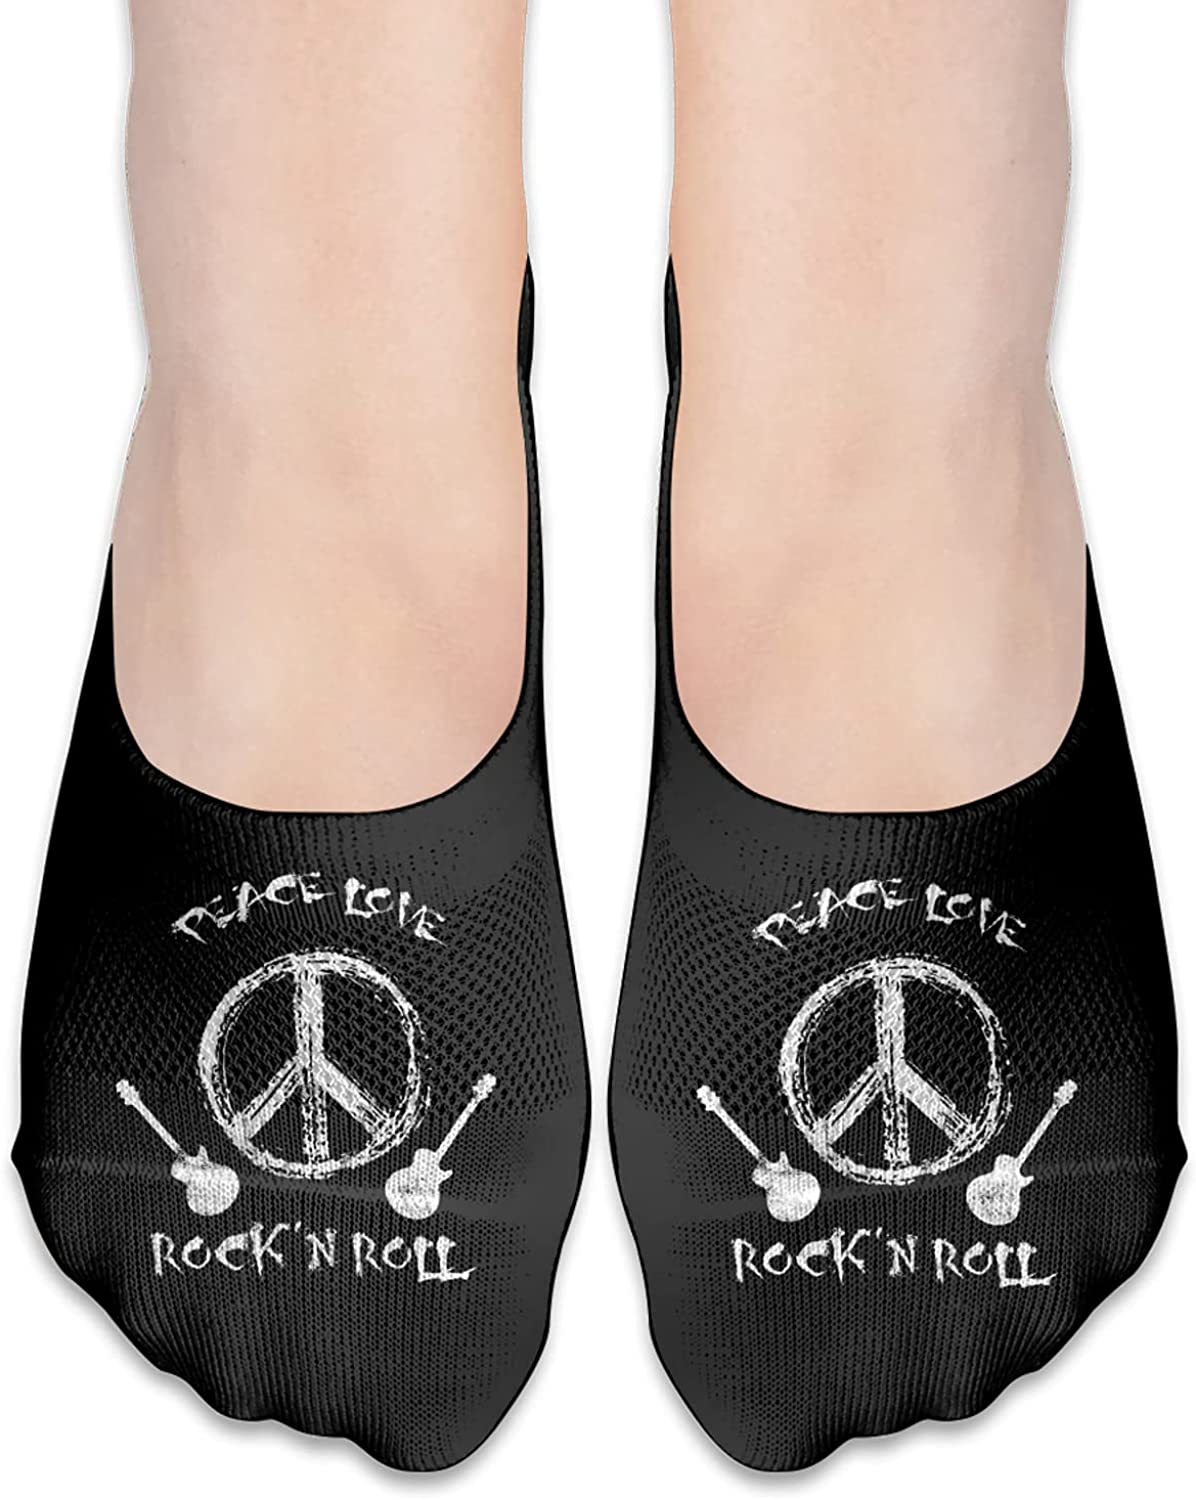 Peace Love And Rock And Roll Unisex Adult Breathable Liner Socks Non Slip No Show Ankle Socks Low Cut Invisible Socks